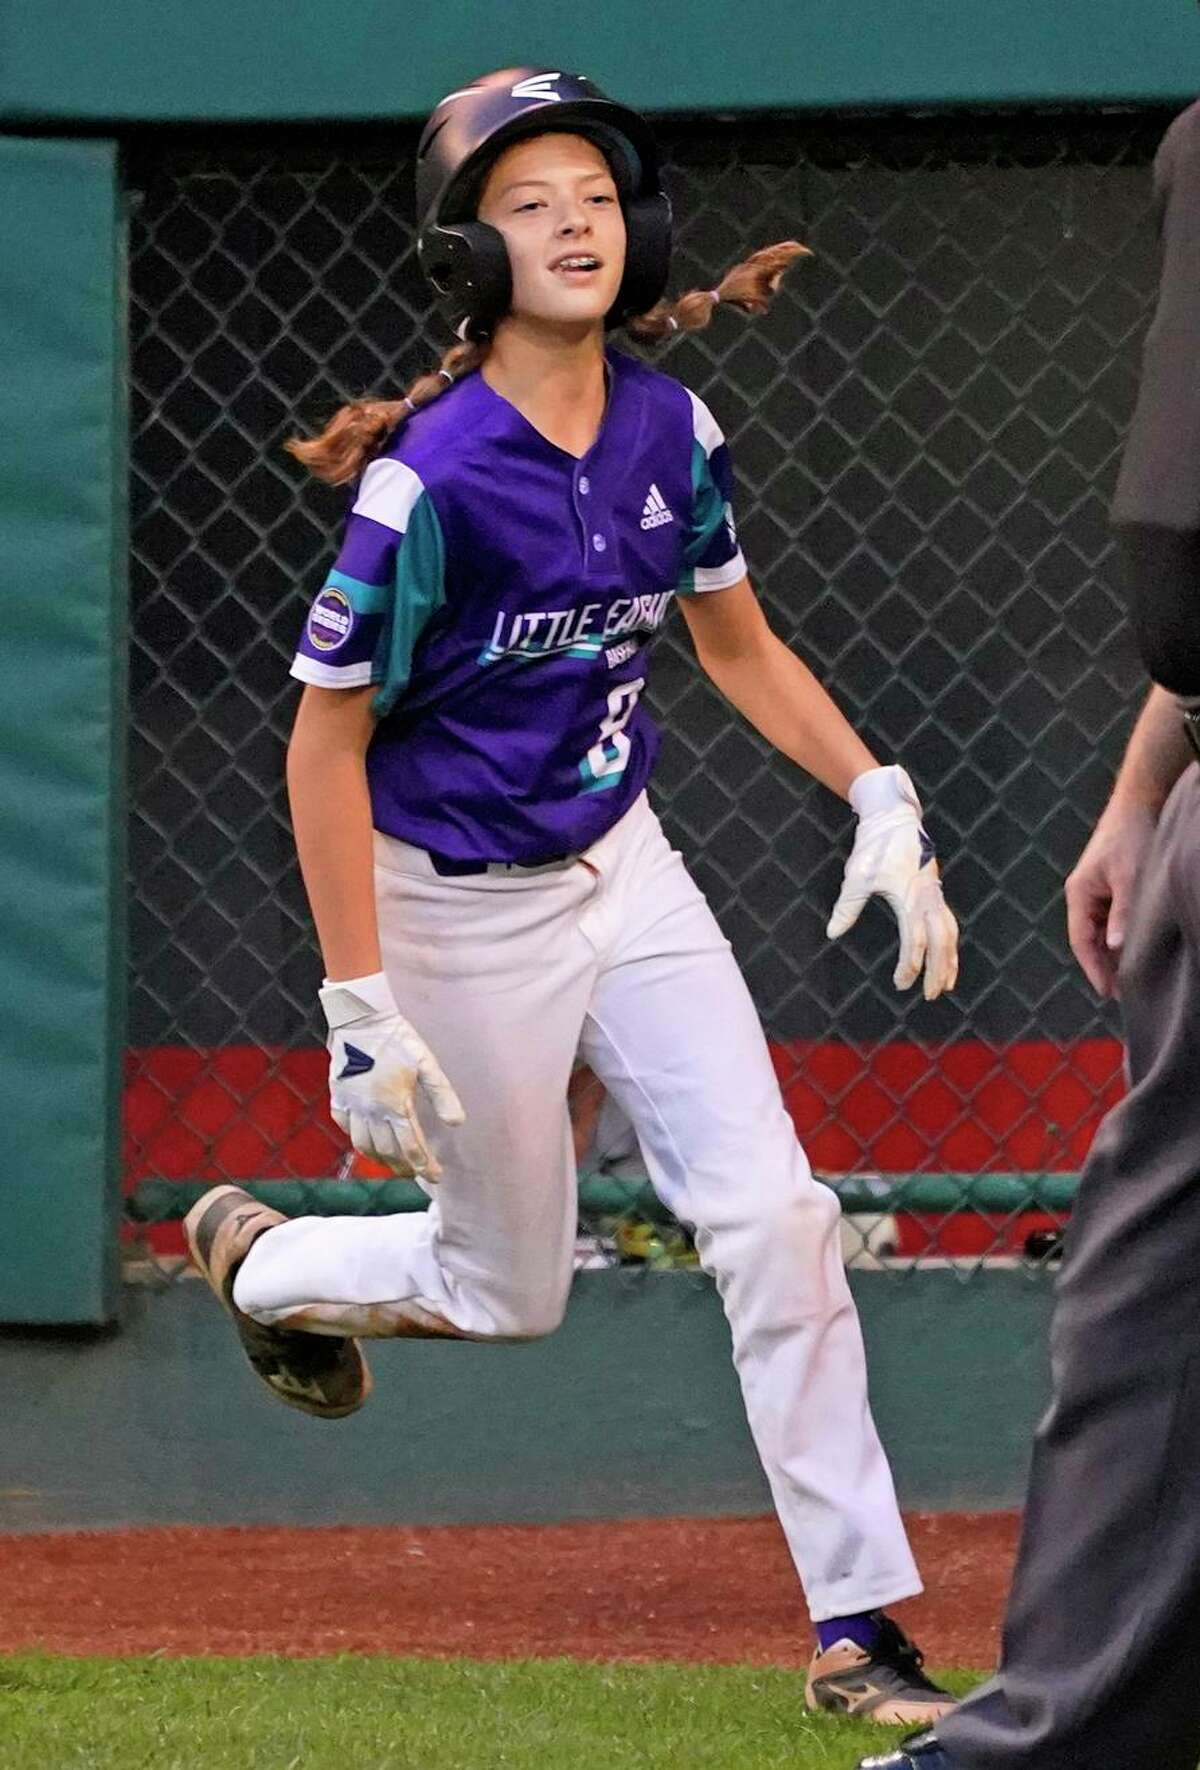 Bruning runs back to the dugout after scoring on a wild pitch by Sammamish, Wash.'s starting pitcher Sanath Chari during the second inning of a baseball game at the Little League World Series in South Williamsport, Pa., Friday, Aug. 20, 2021. (AP Photo/Gene J. Puskar)